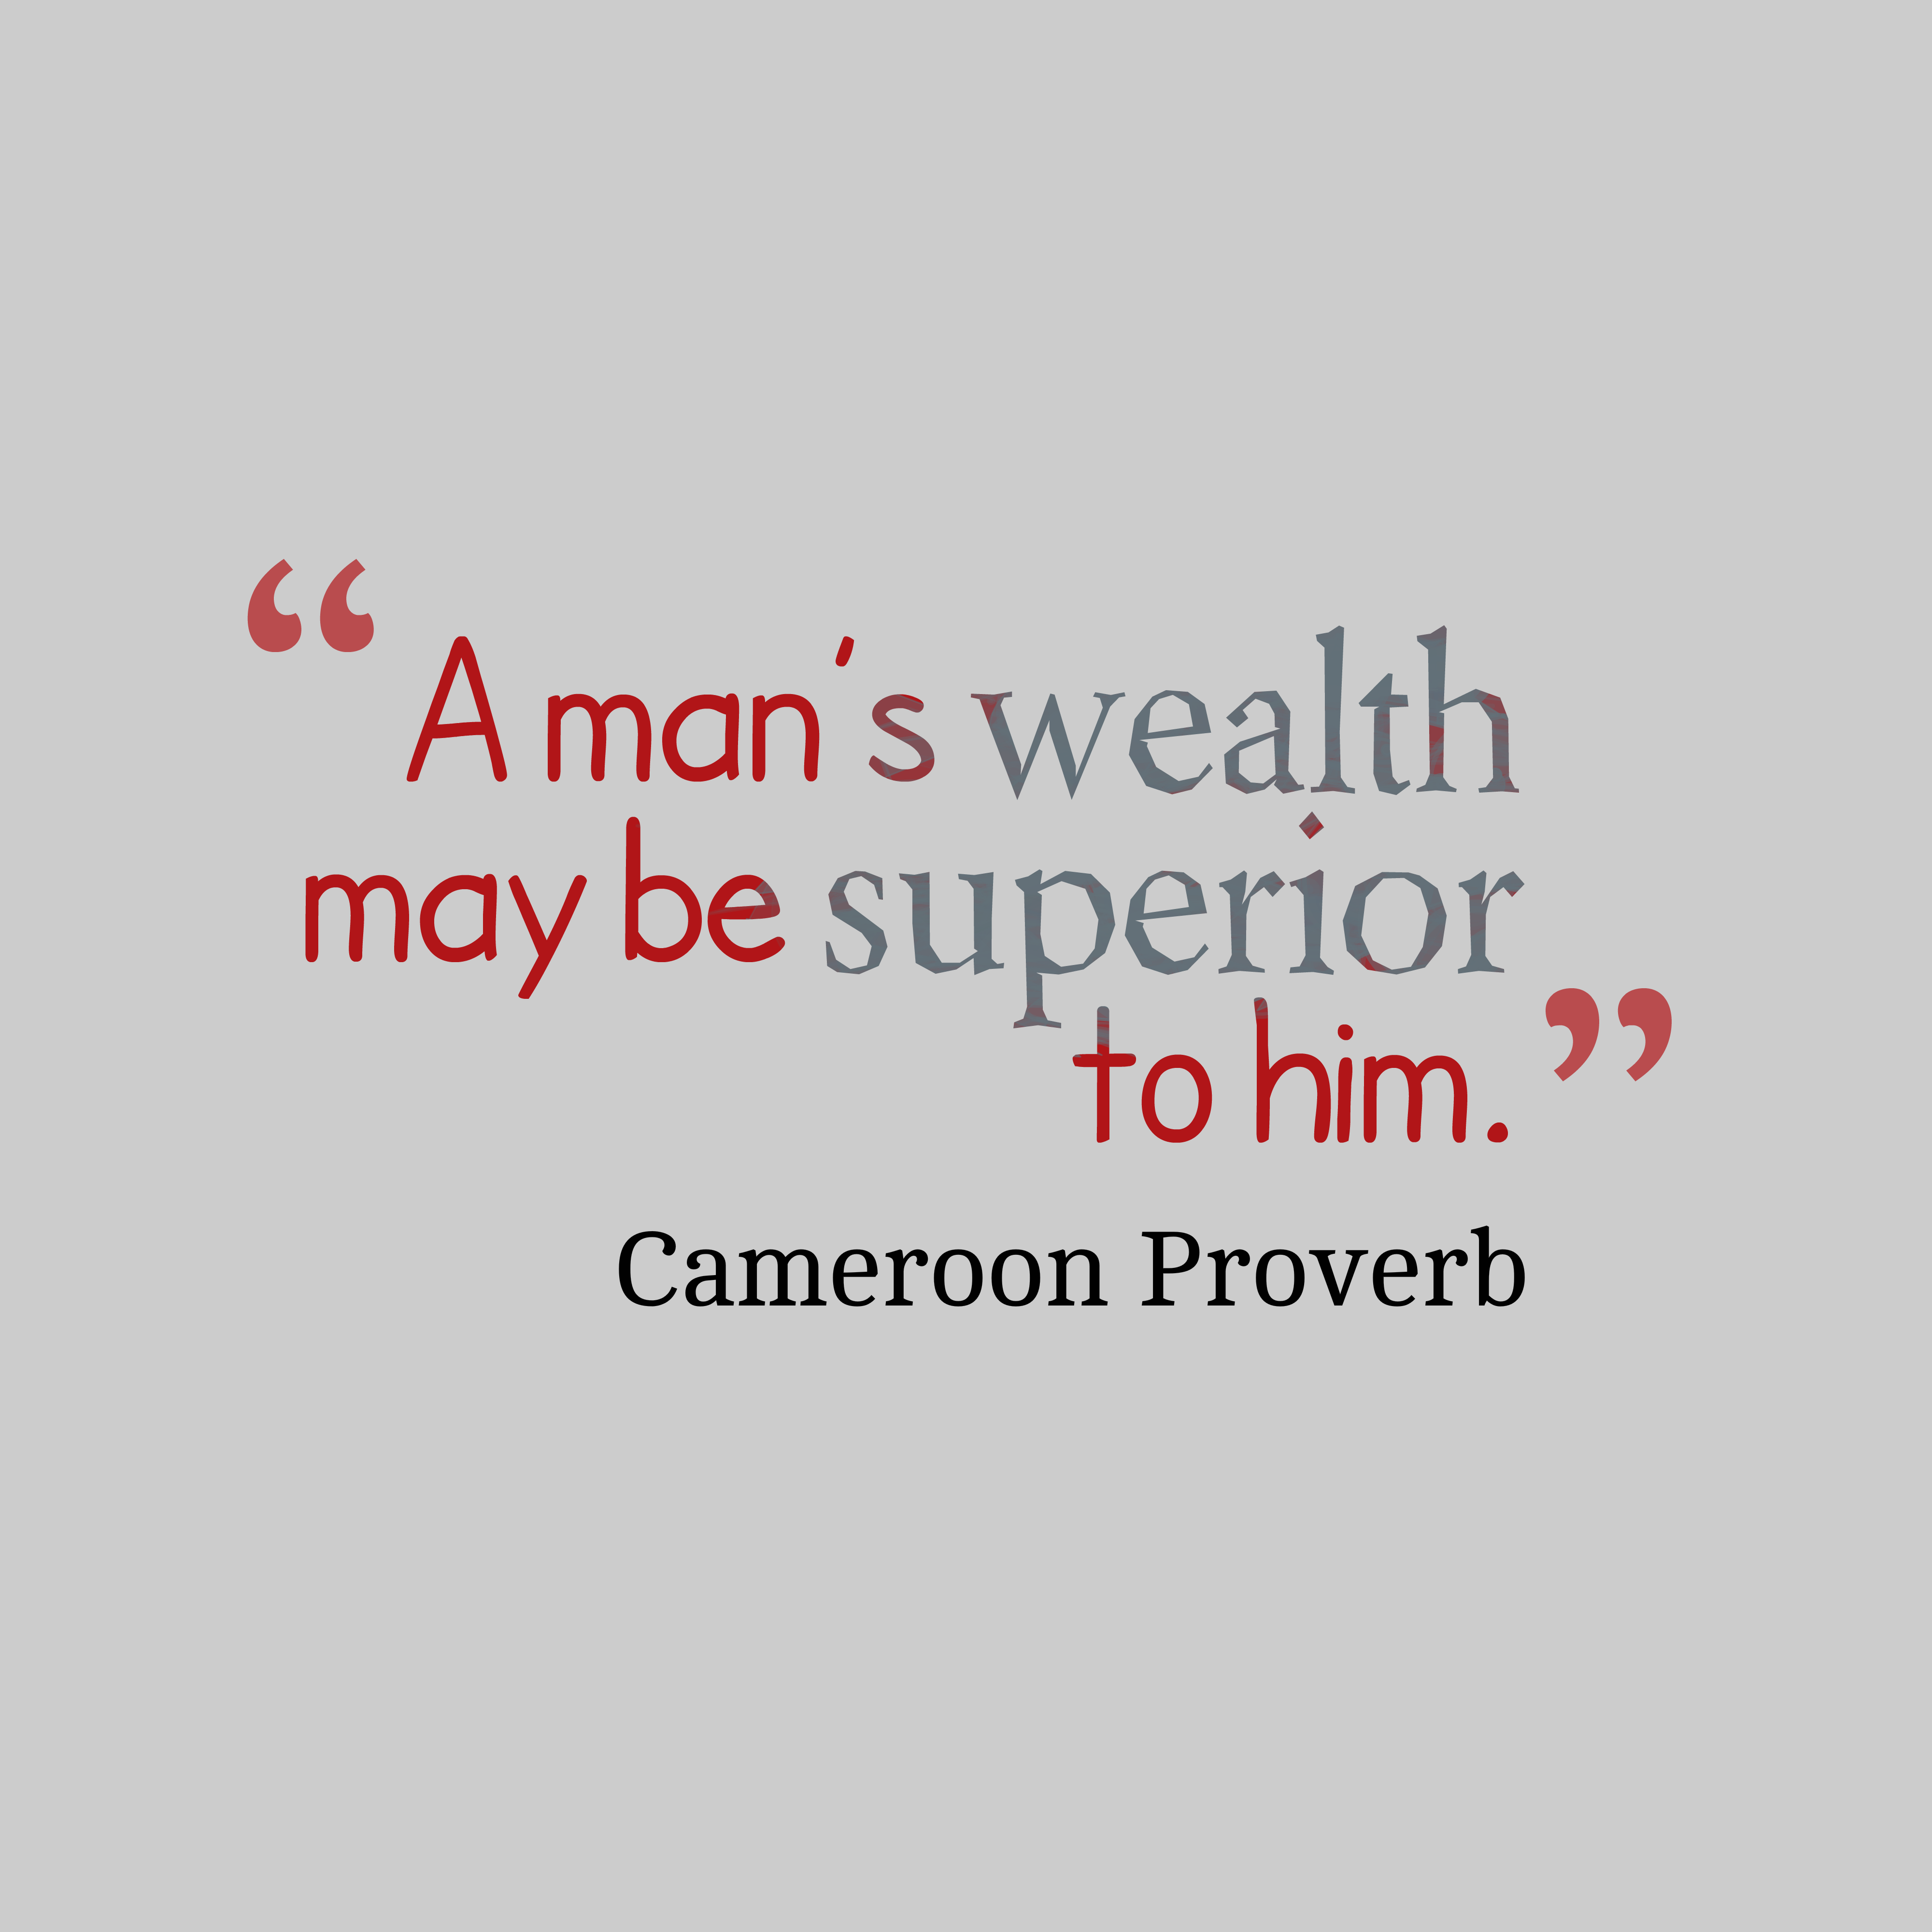 Quotes image of A man's wealth may be superior to him.